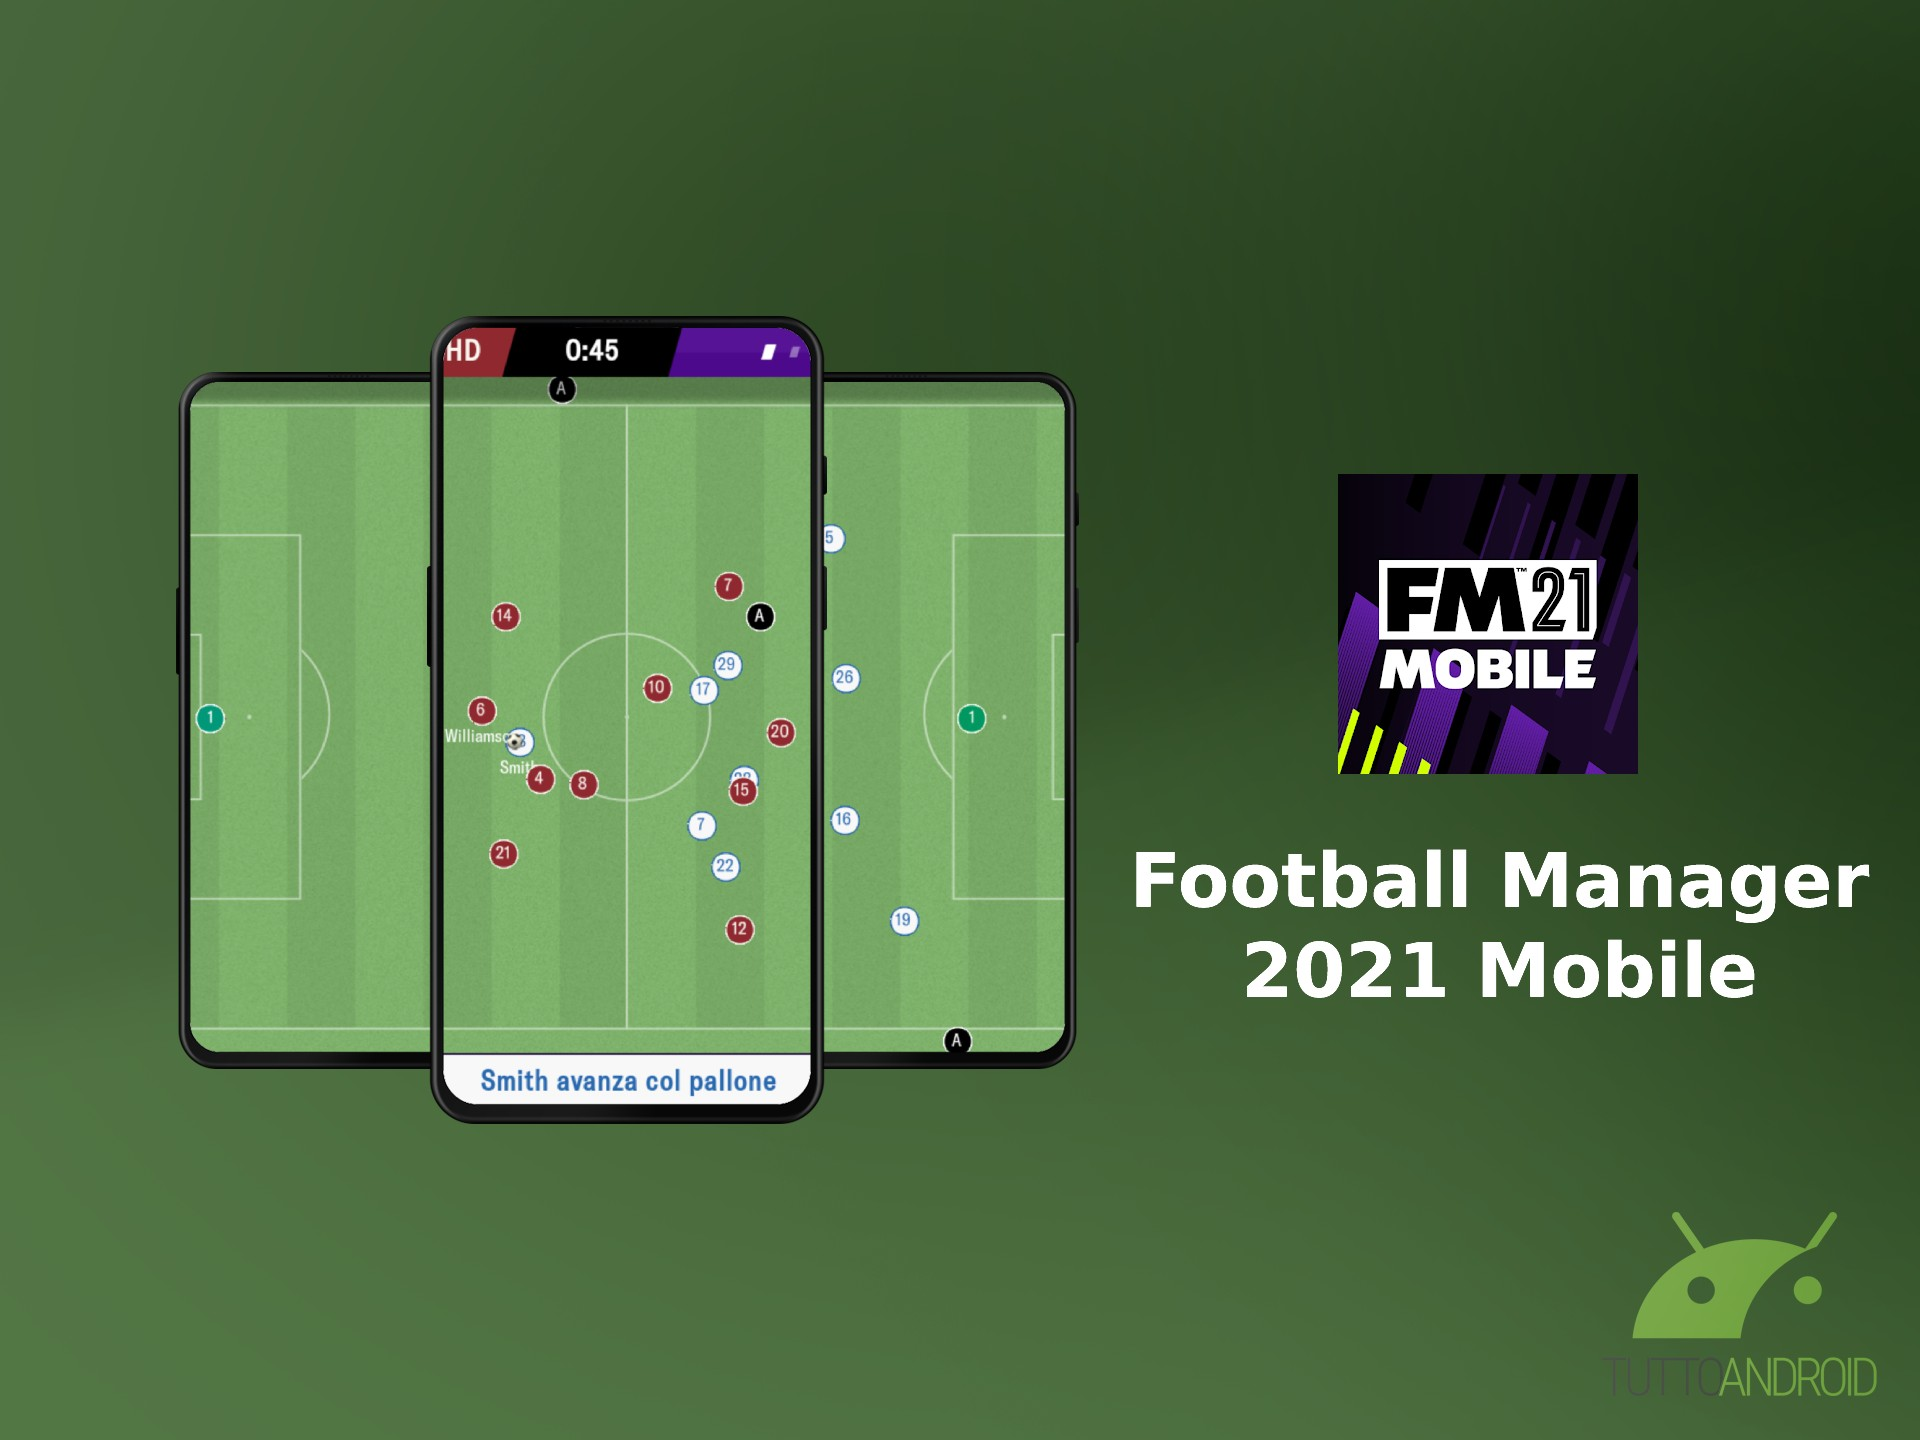 Football Manager 2021 Mobile sbarca su Android con numerose novità